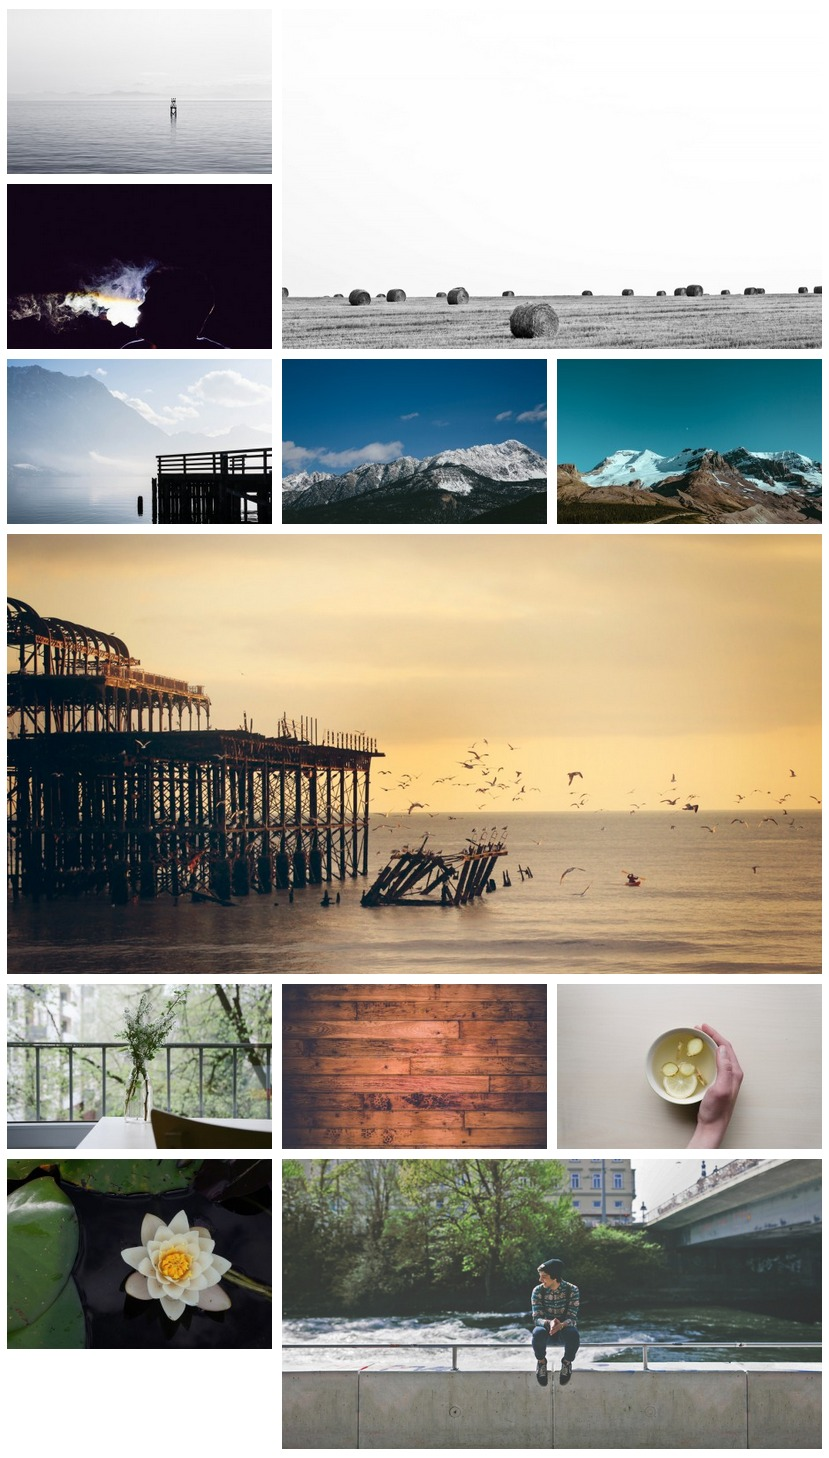 final-tiles-grid-gallery-lite screenshot 3